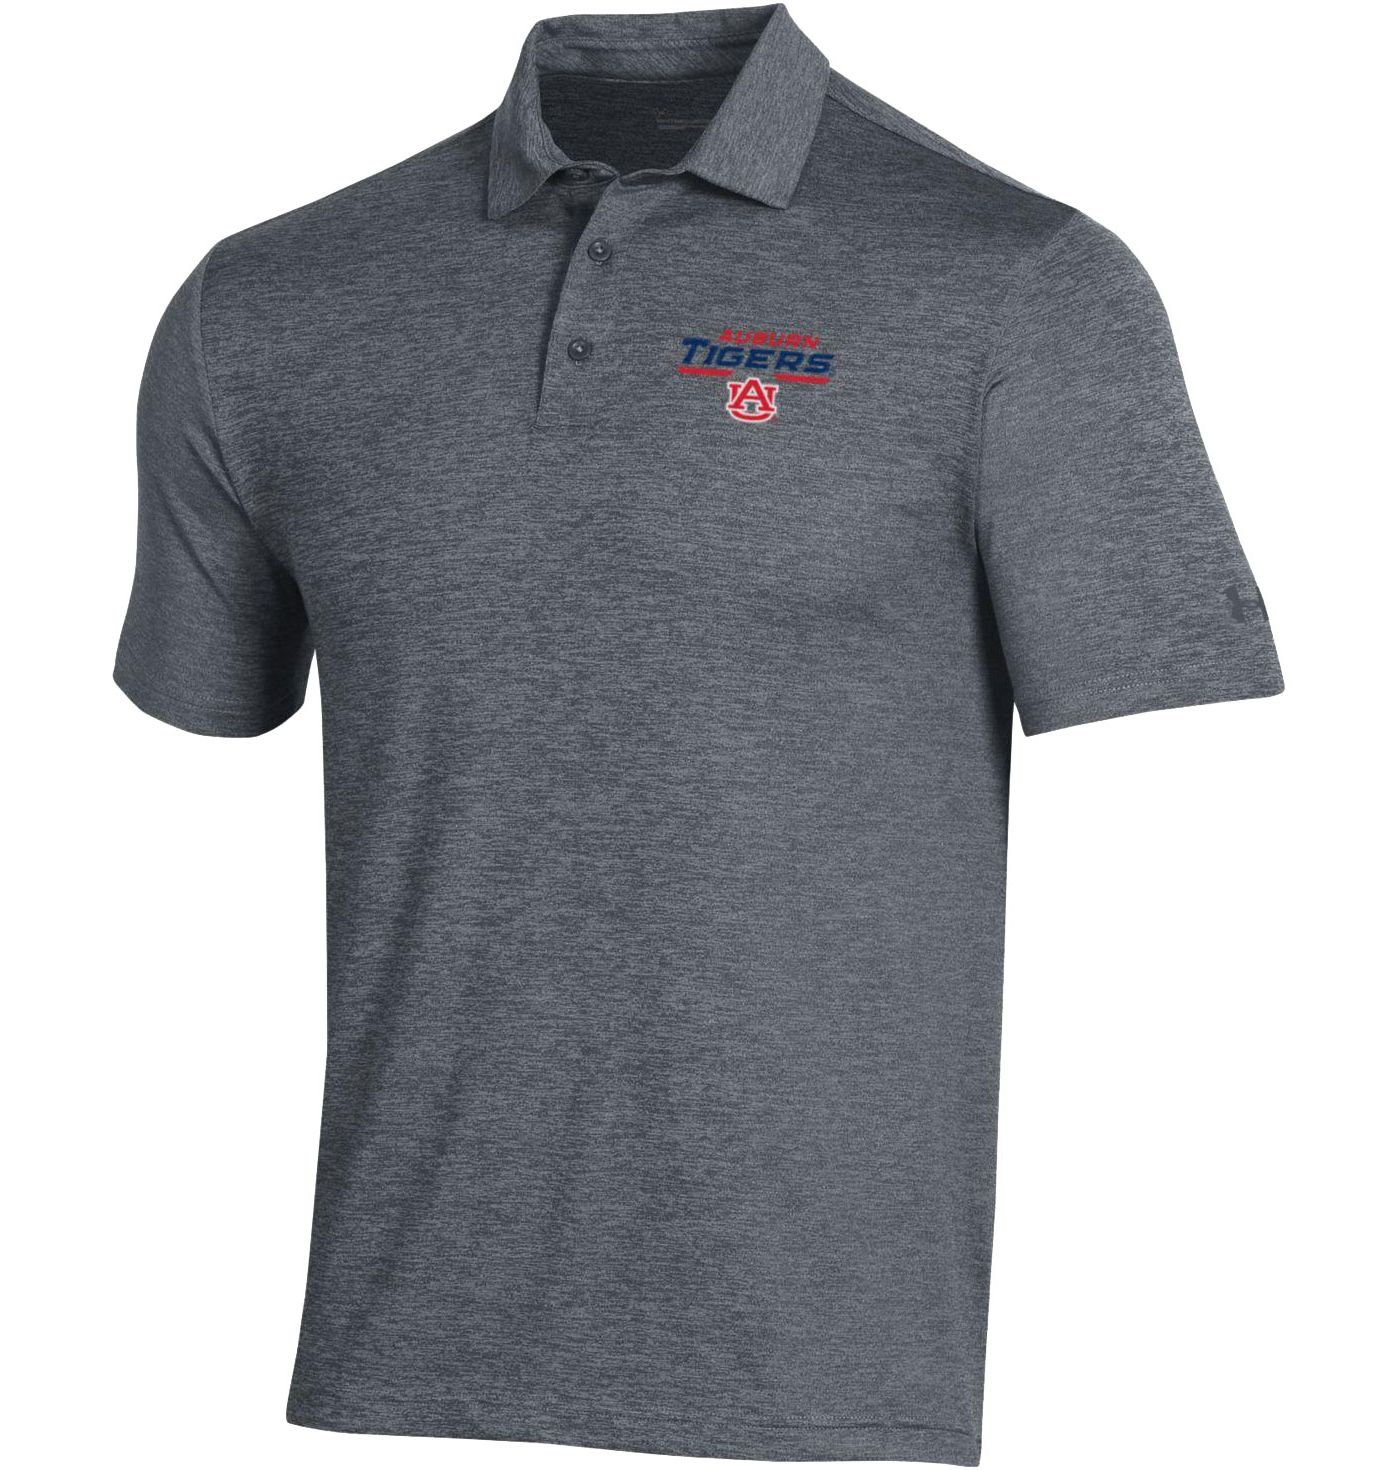 Under Armour Men's Auburn Tigers Grey Playoff Polo